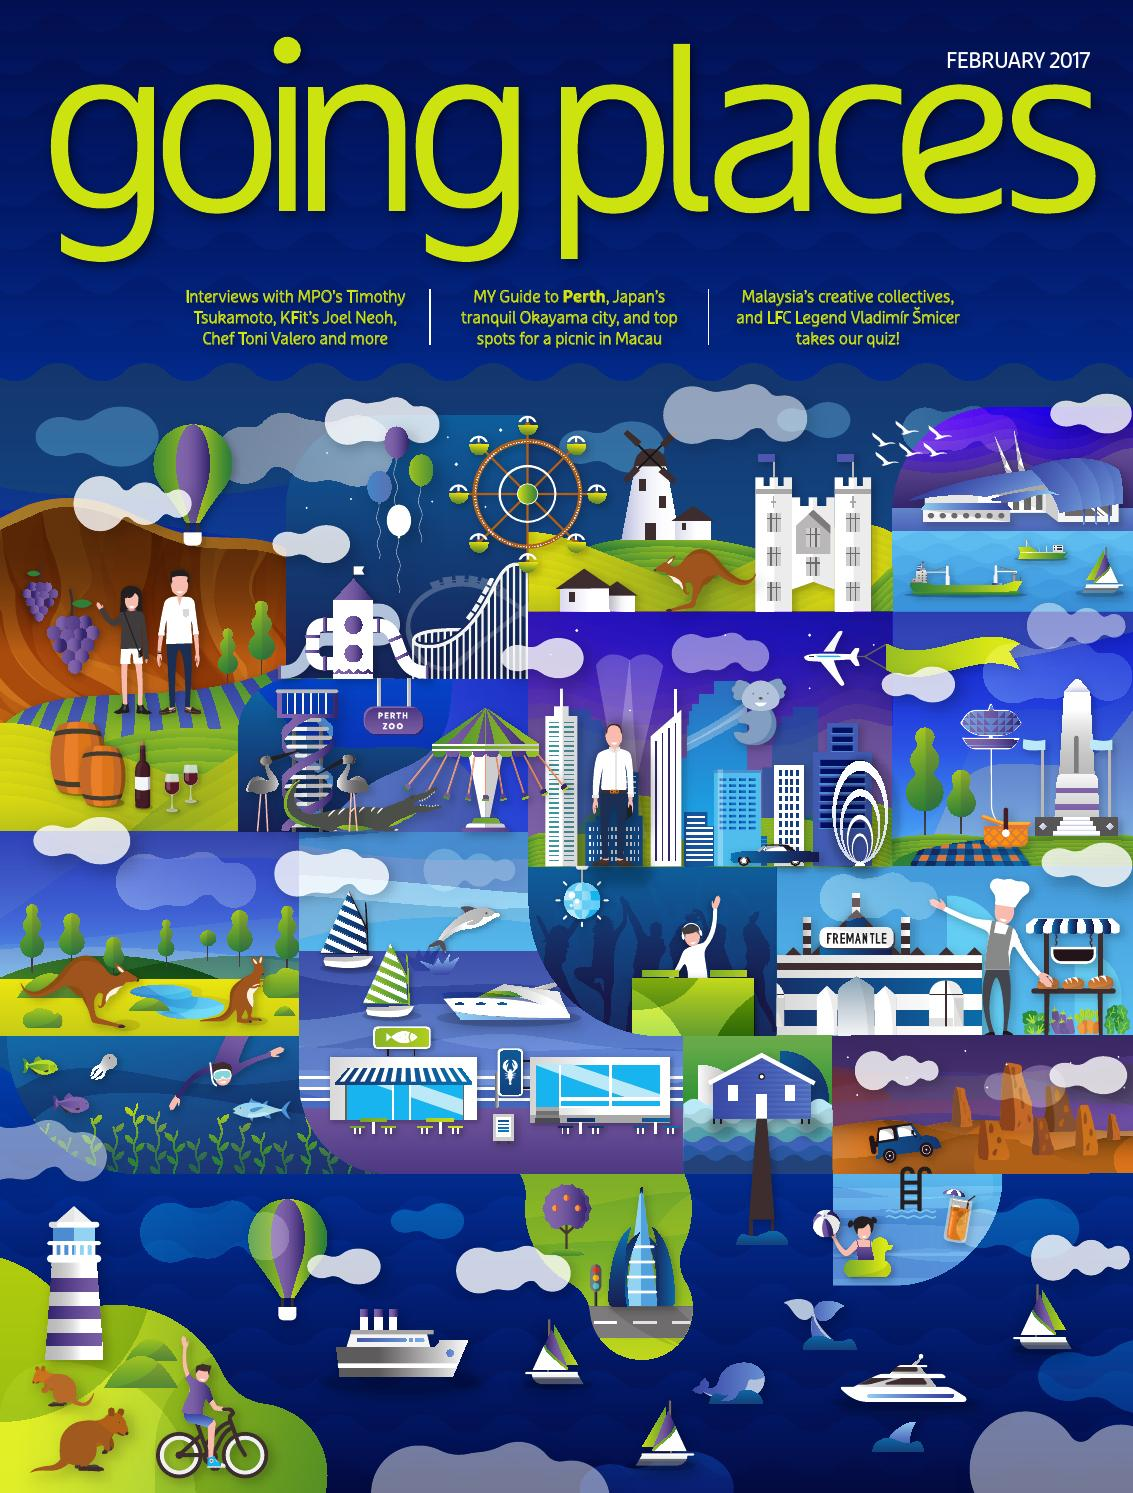 Going Places February 2017 By Spafax Malaysia Issuu